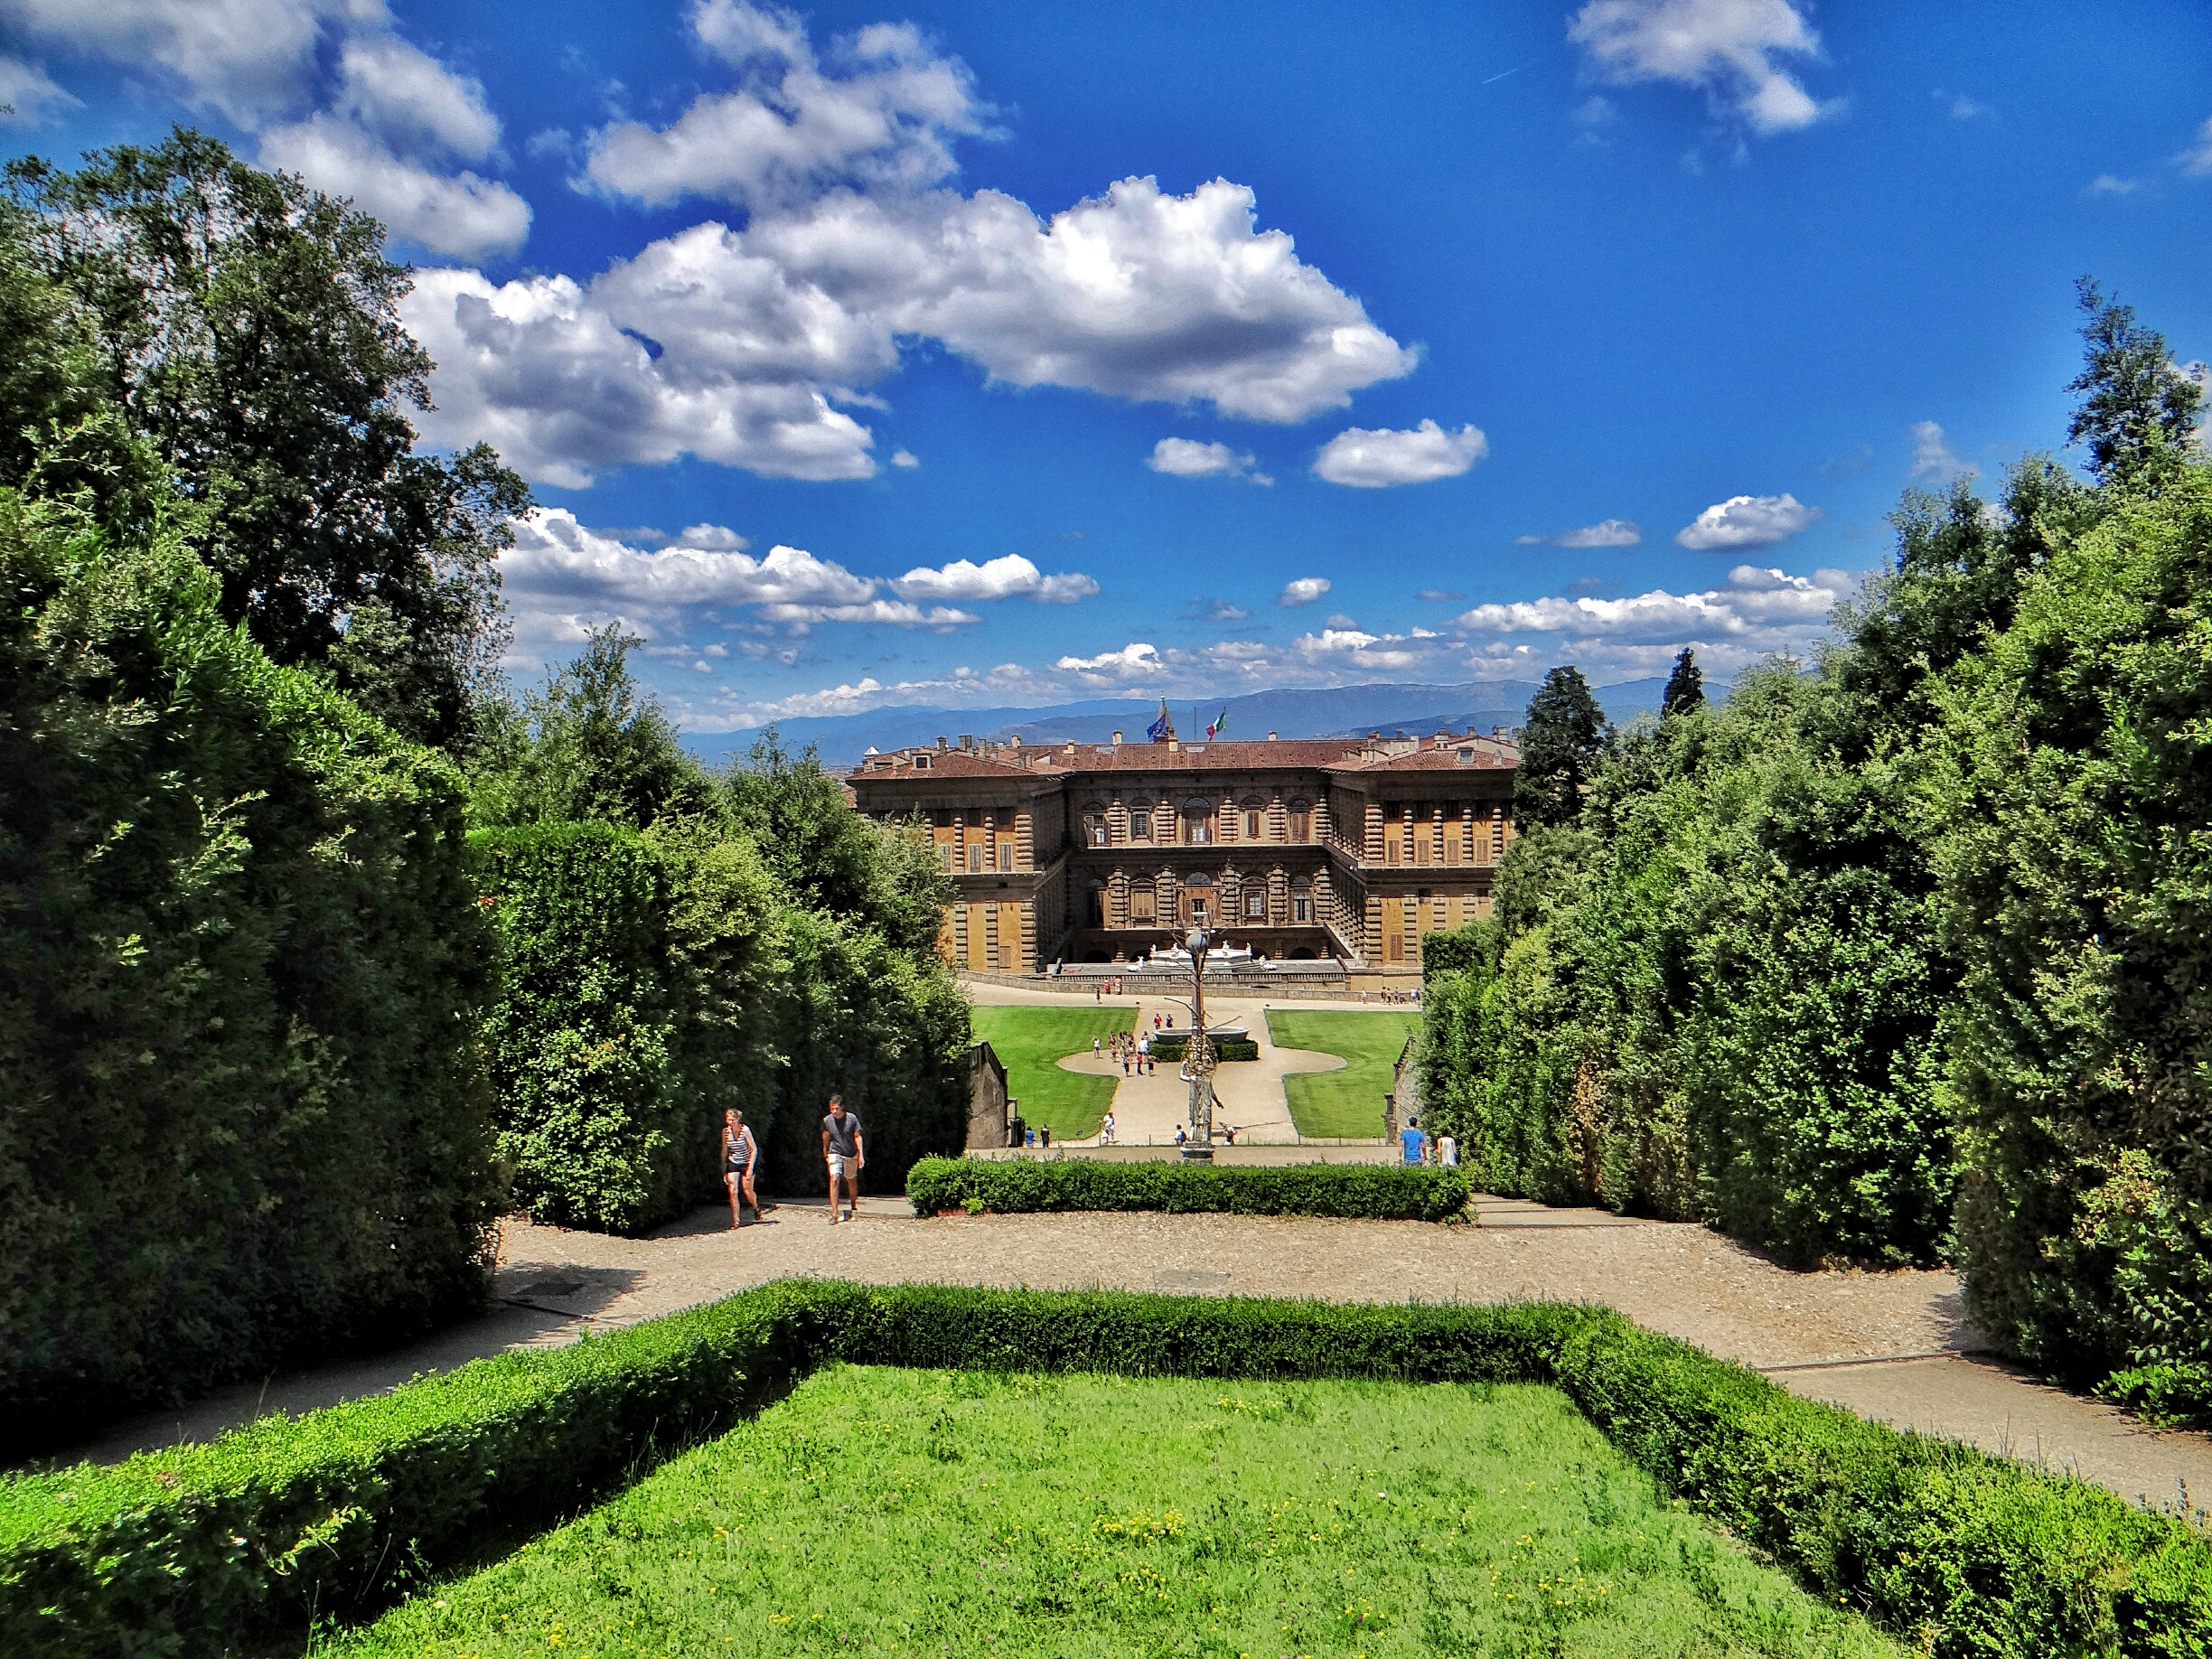 Boboli garden escape the crowds at firenze world wanderista - Giardino di boboli firenze ...